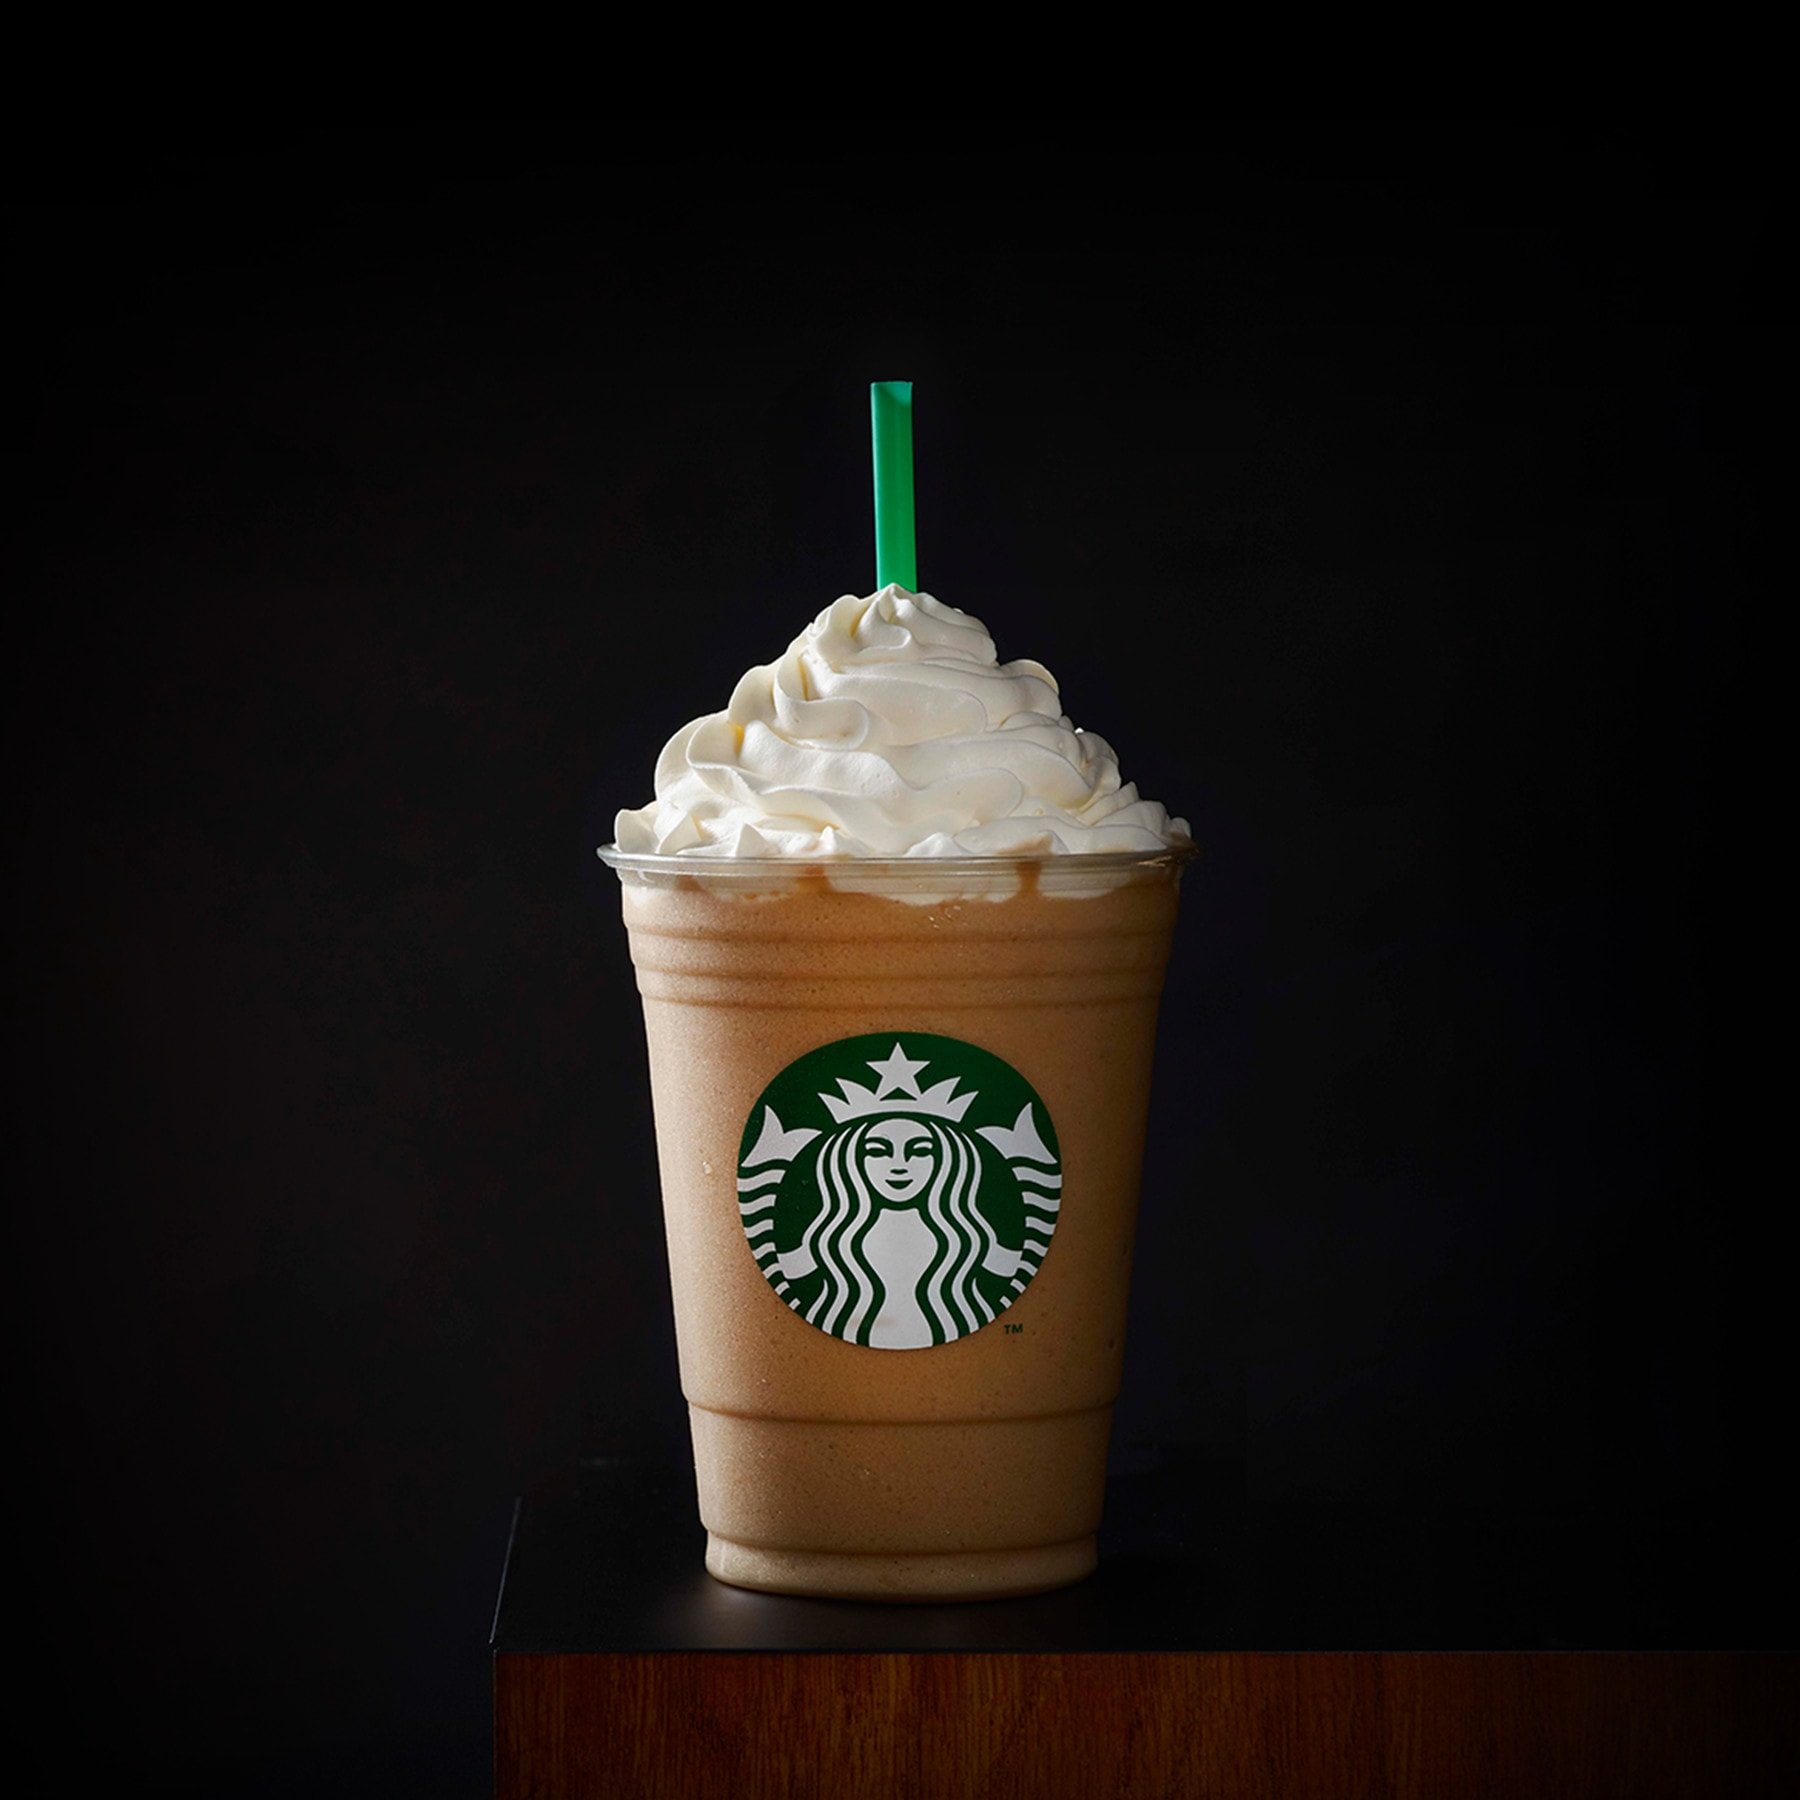 Starbucks Chocolate Frappuccino Calories